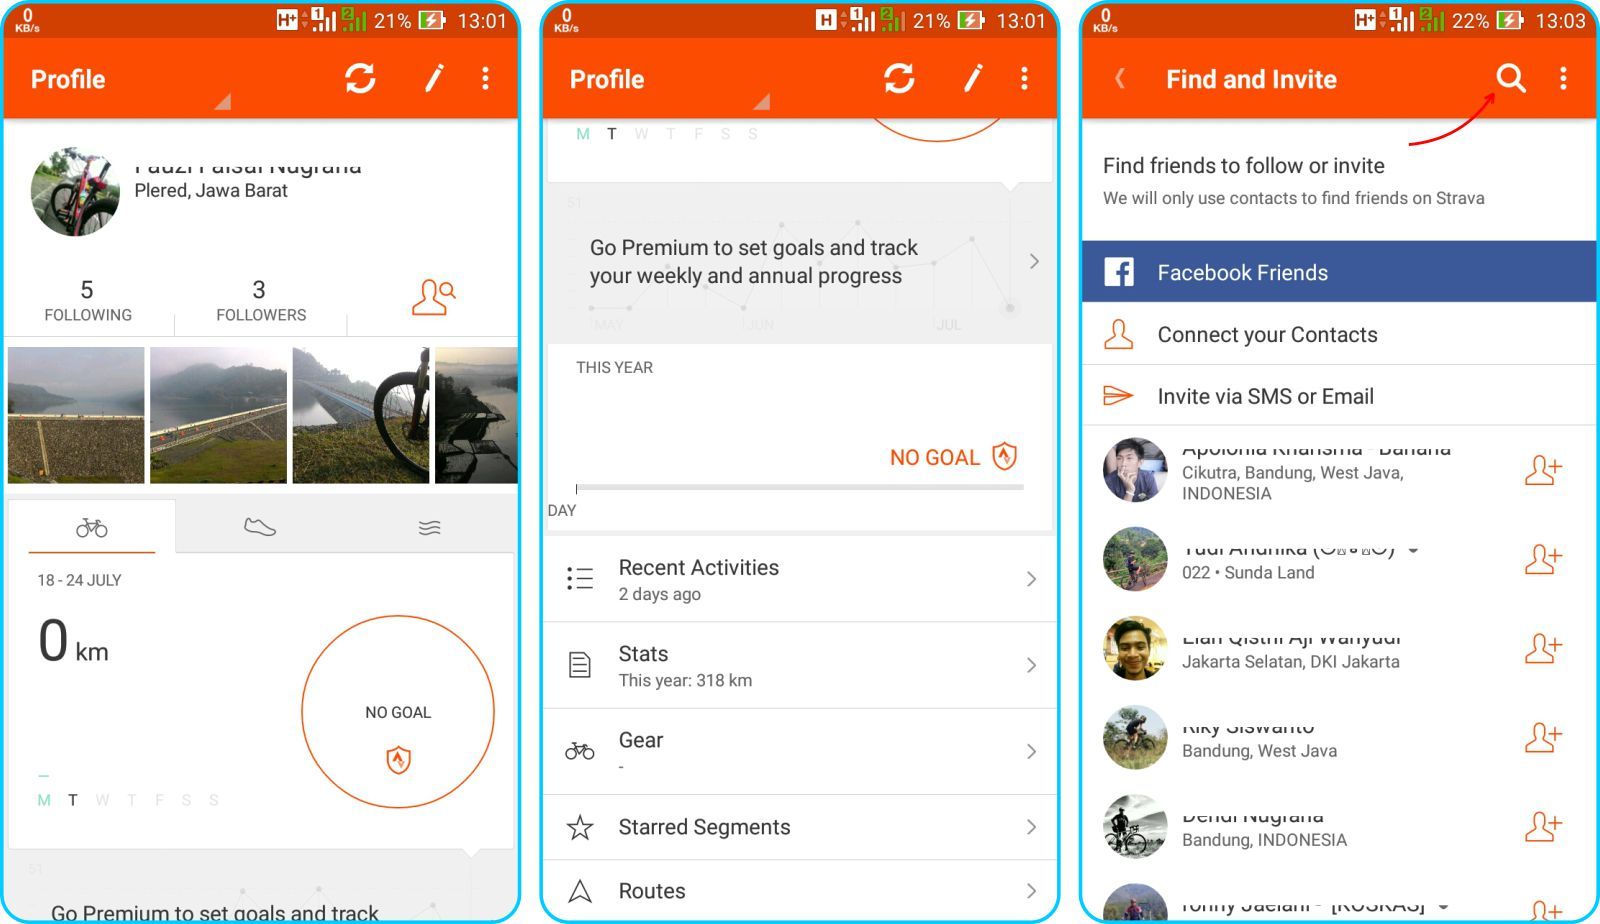 Strava Running and Cycling GPS - Tampilan Halaman Profile Pada Strava